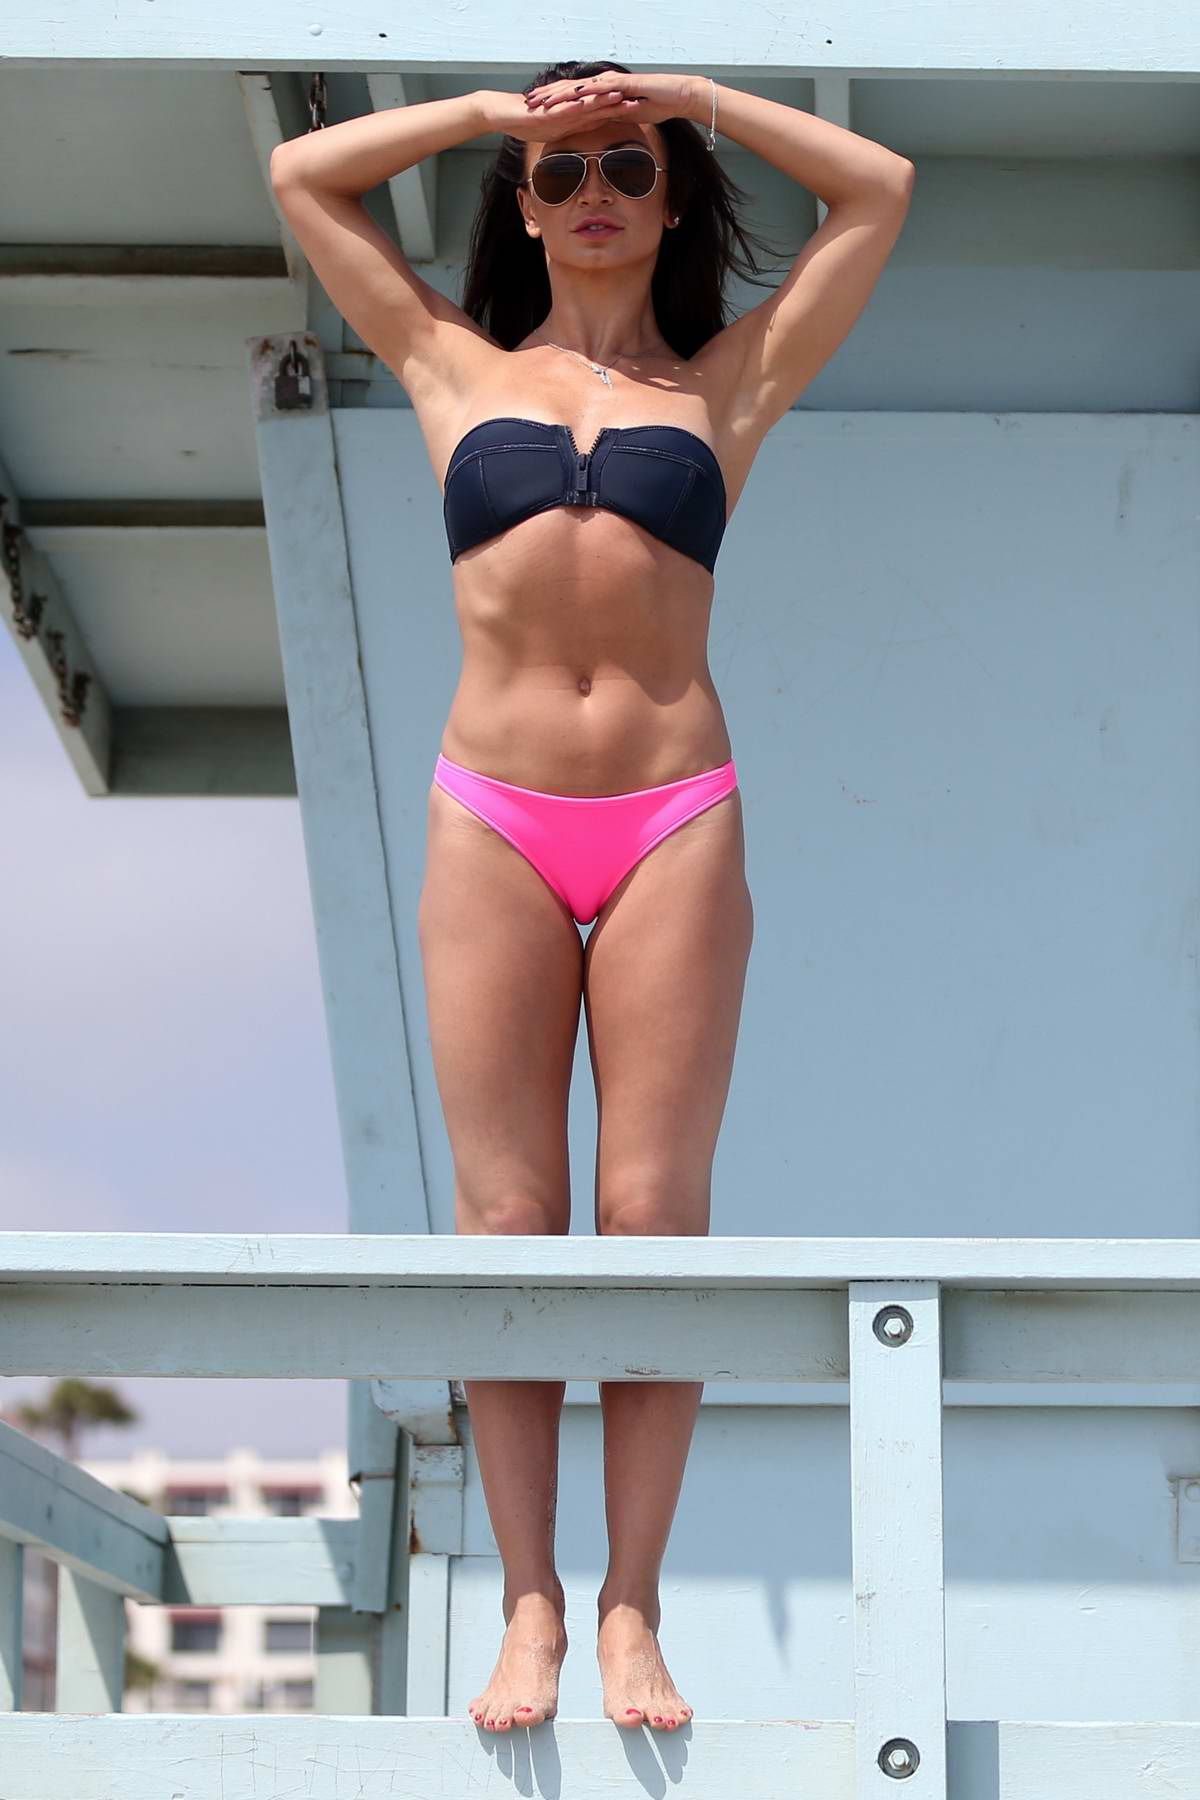 Karina Smirnoff in a bikini channels her inner Baywatch during the recent la fall heatwave in Santa Monica, California